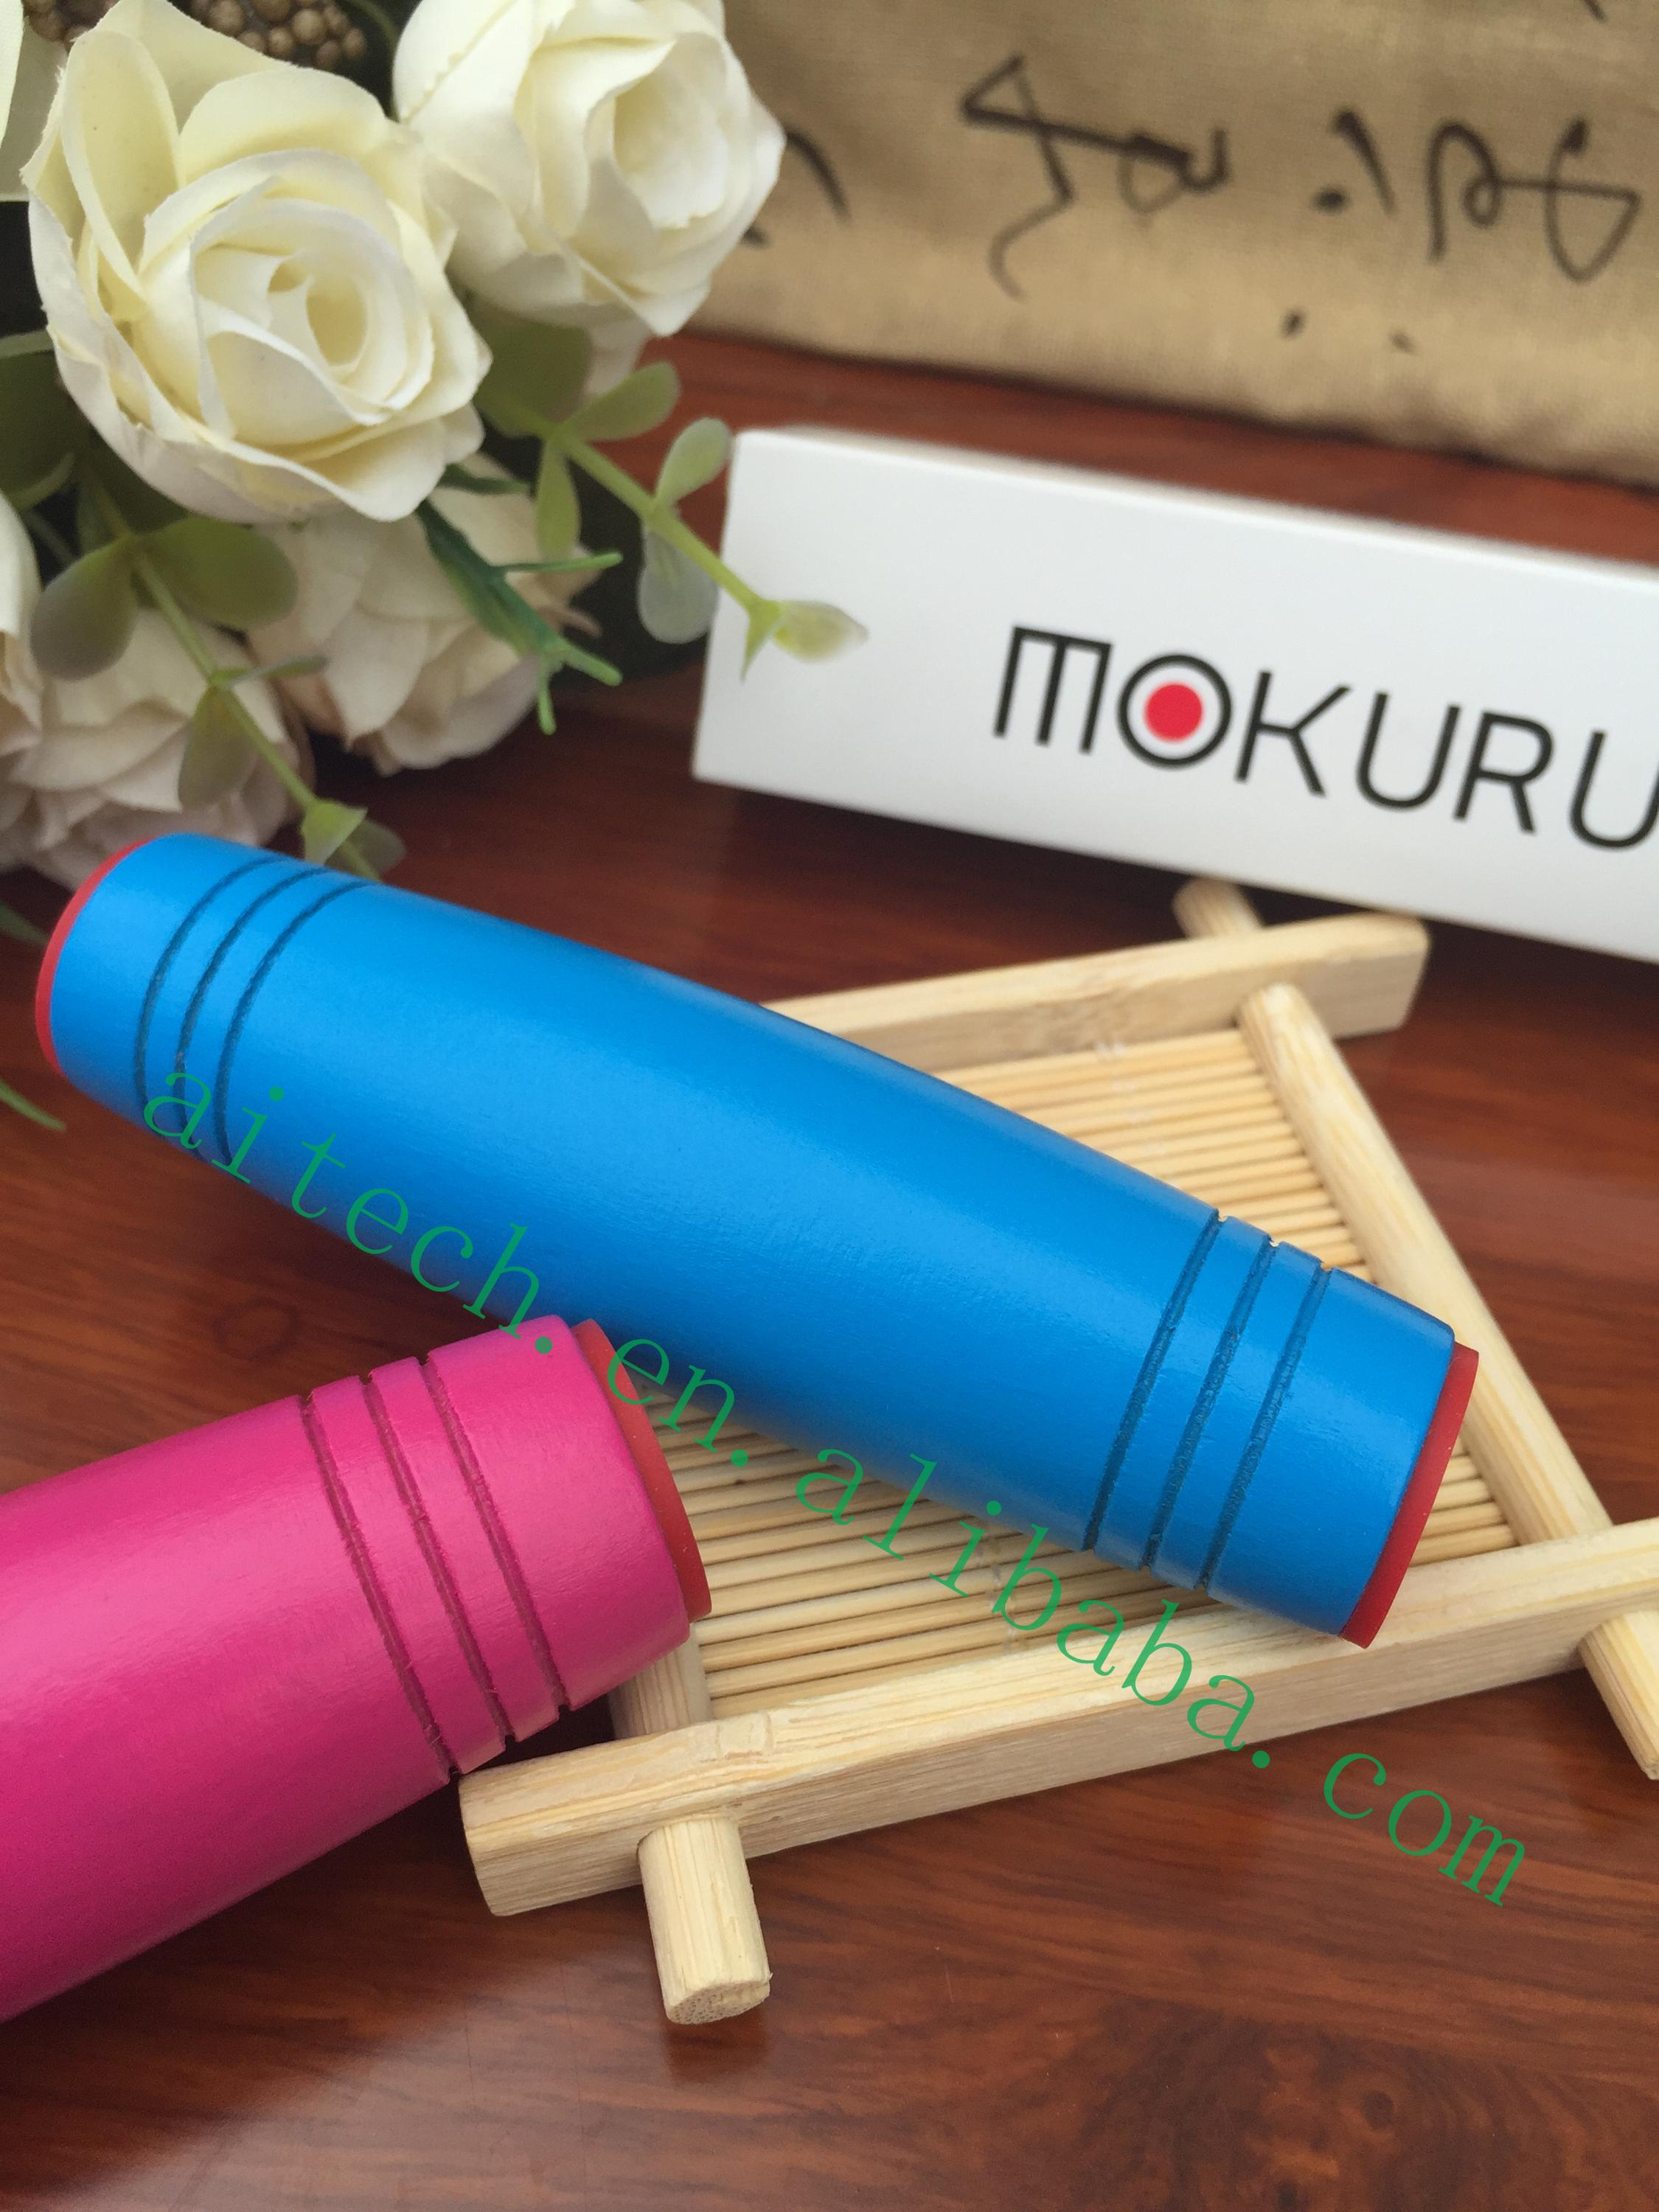 2017 New Arravial Rollver Fidget Stick Mokuru Wooden Fidget Toy Desk Toys Sticker